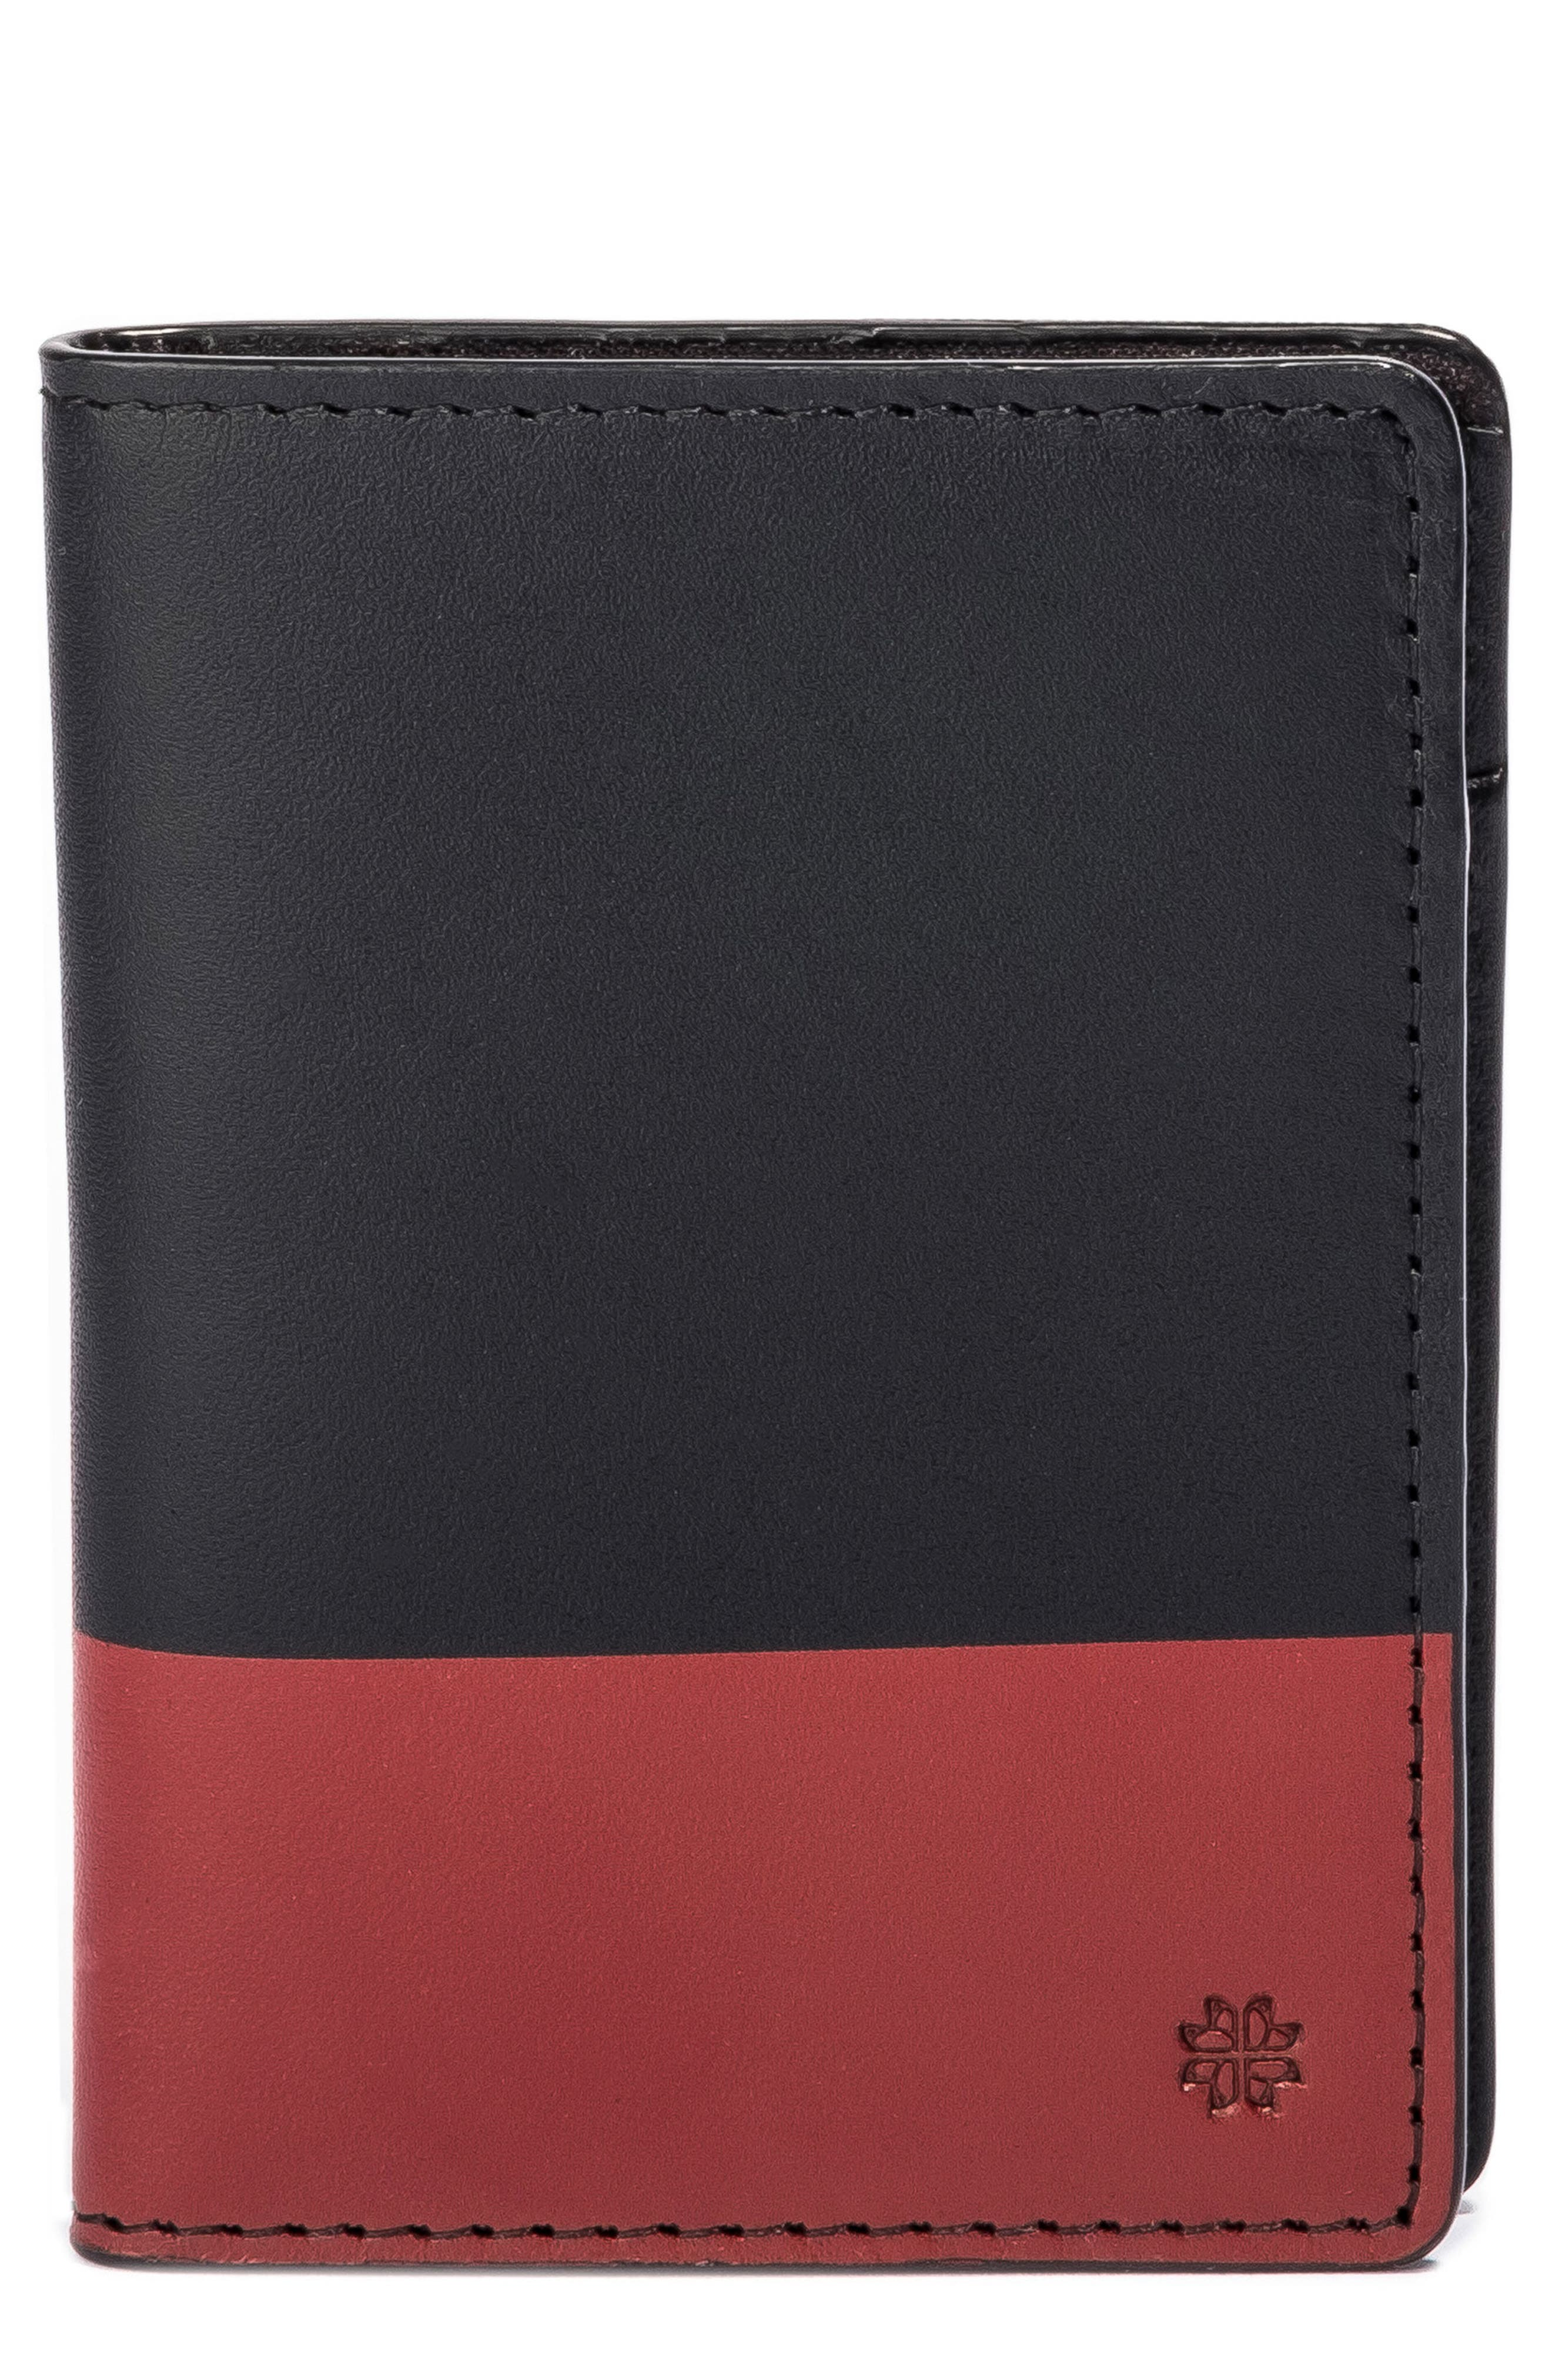 Leather Wallet,                         Main,                         color, Red